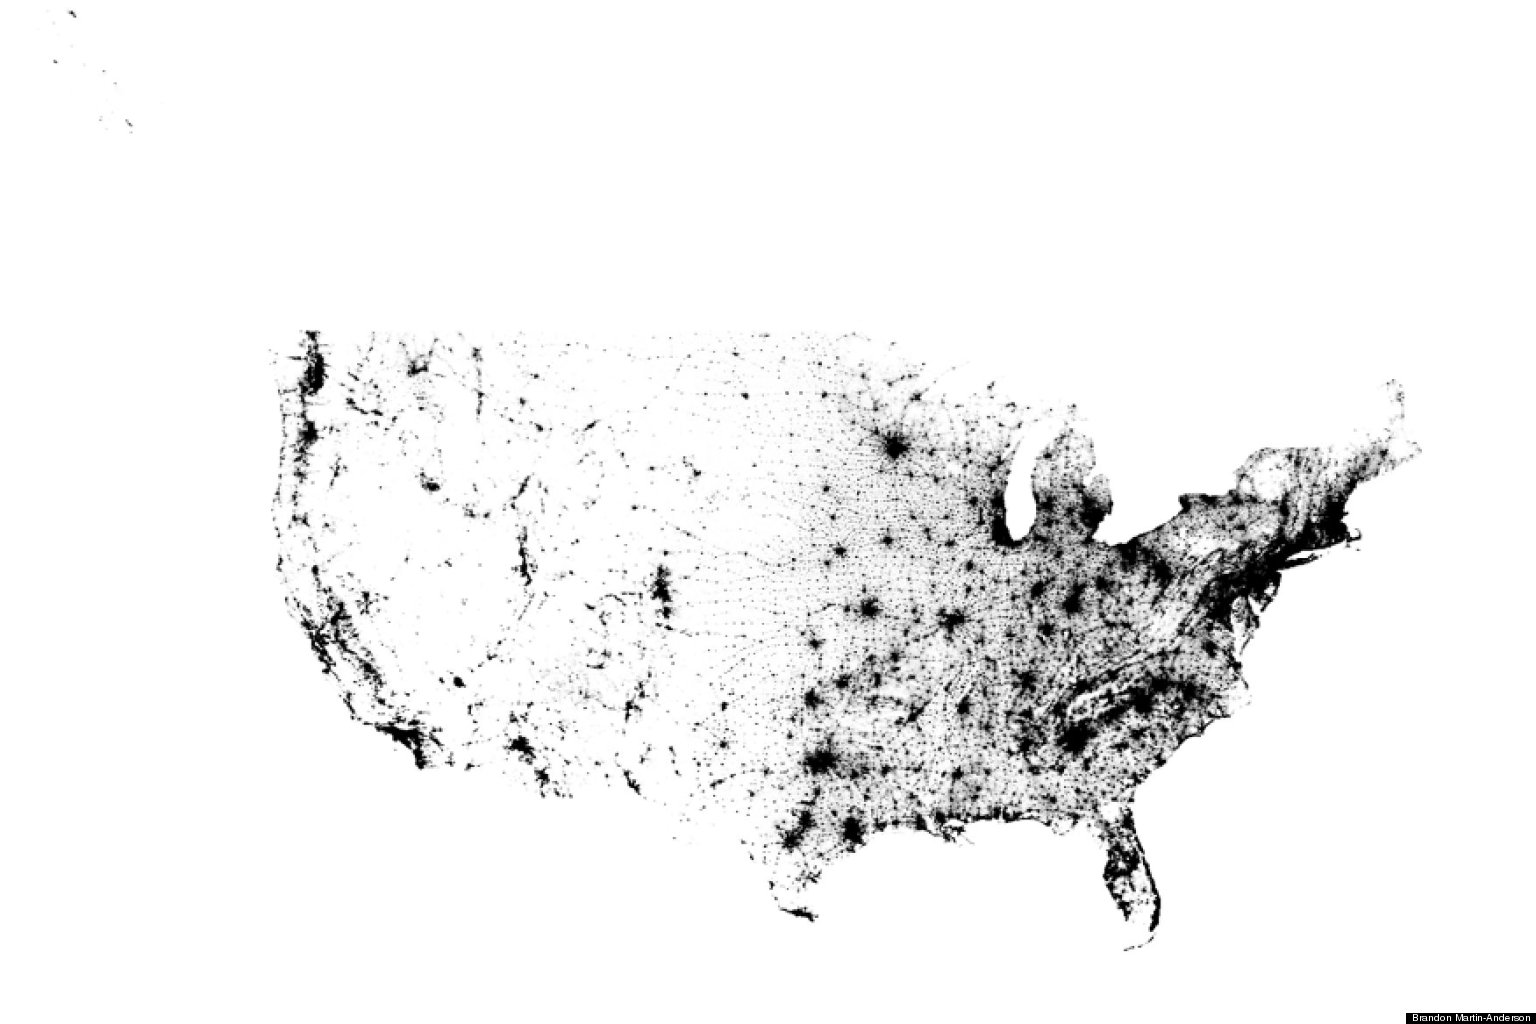 US Dot Map By Brandon MartinAnderson Shows The Population Like - Us census dot map